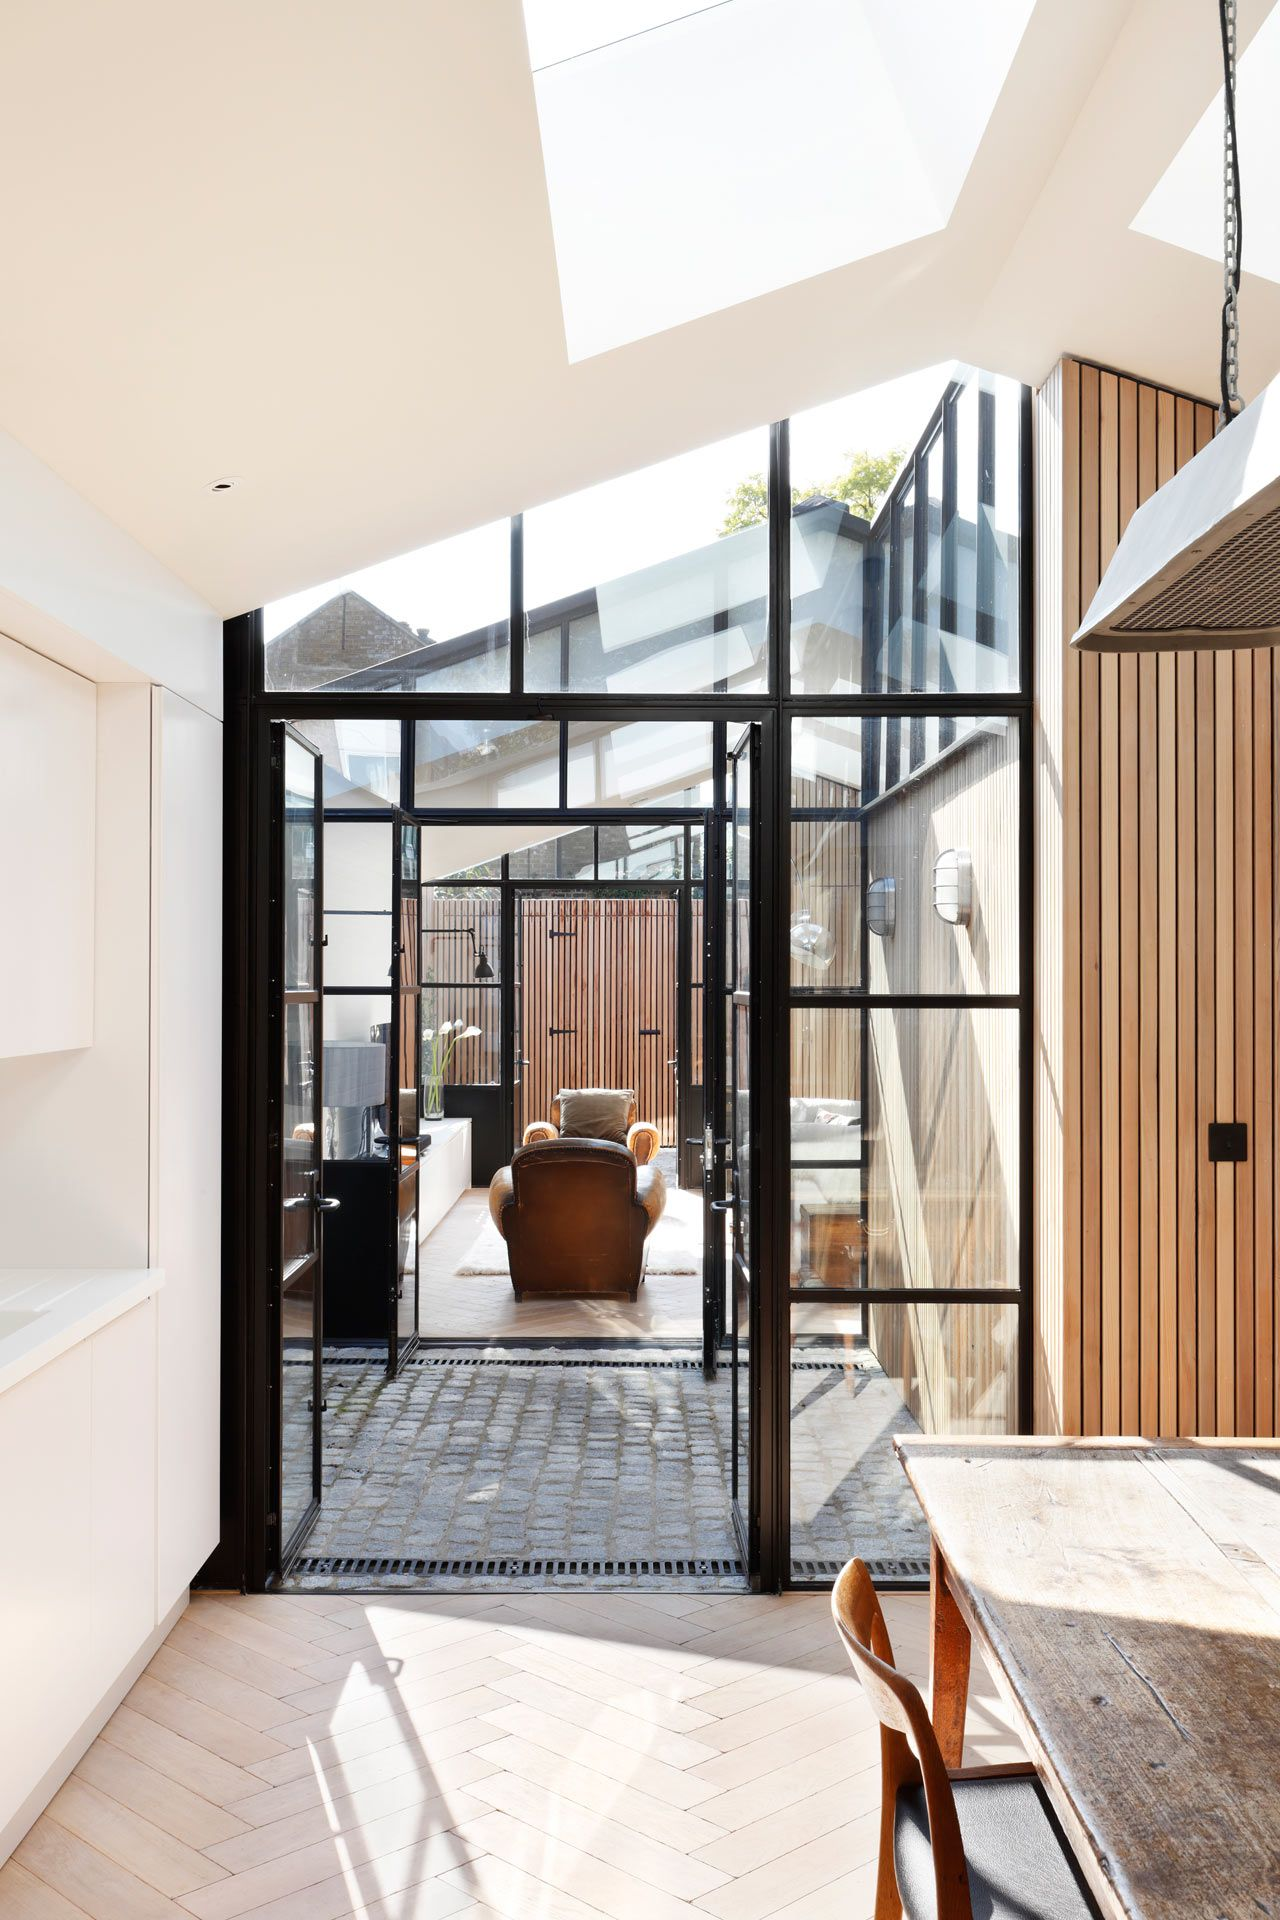 A london wood yard converted into a lightfilled family home in